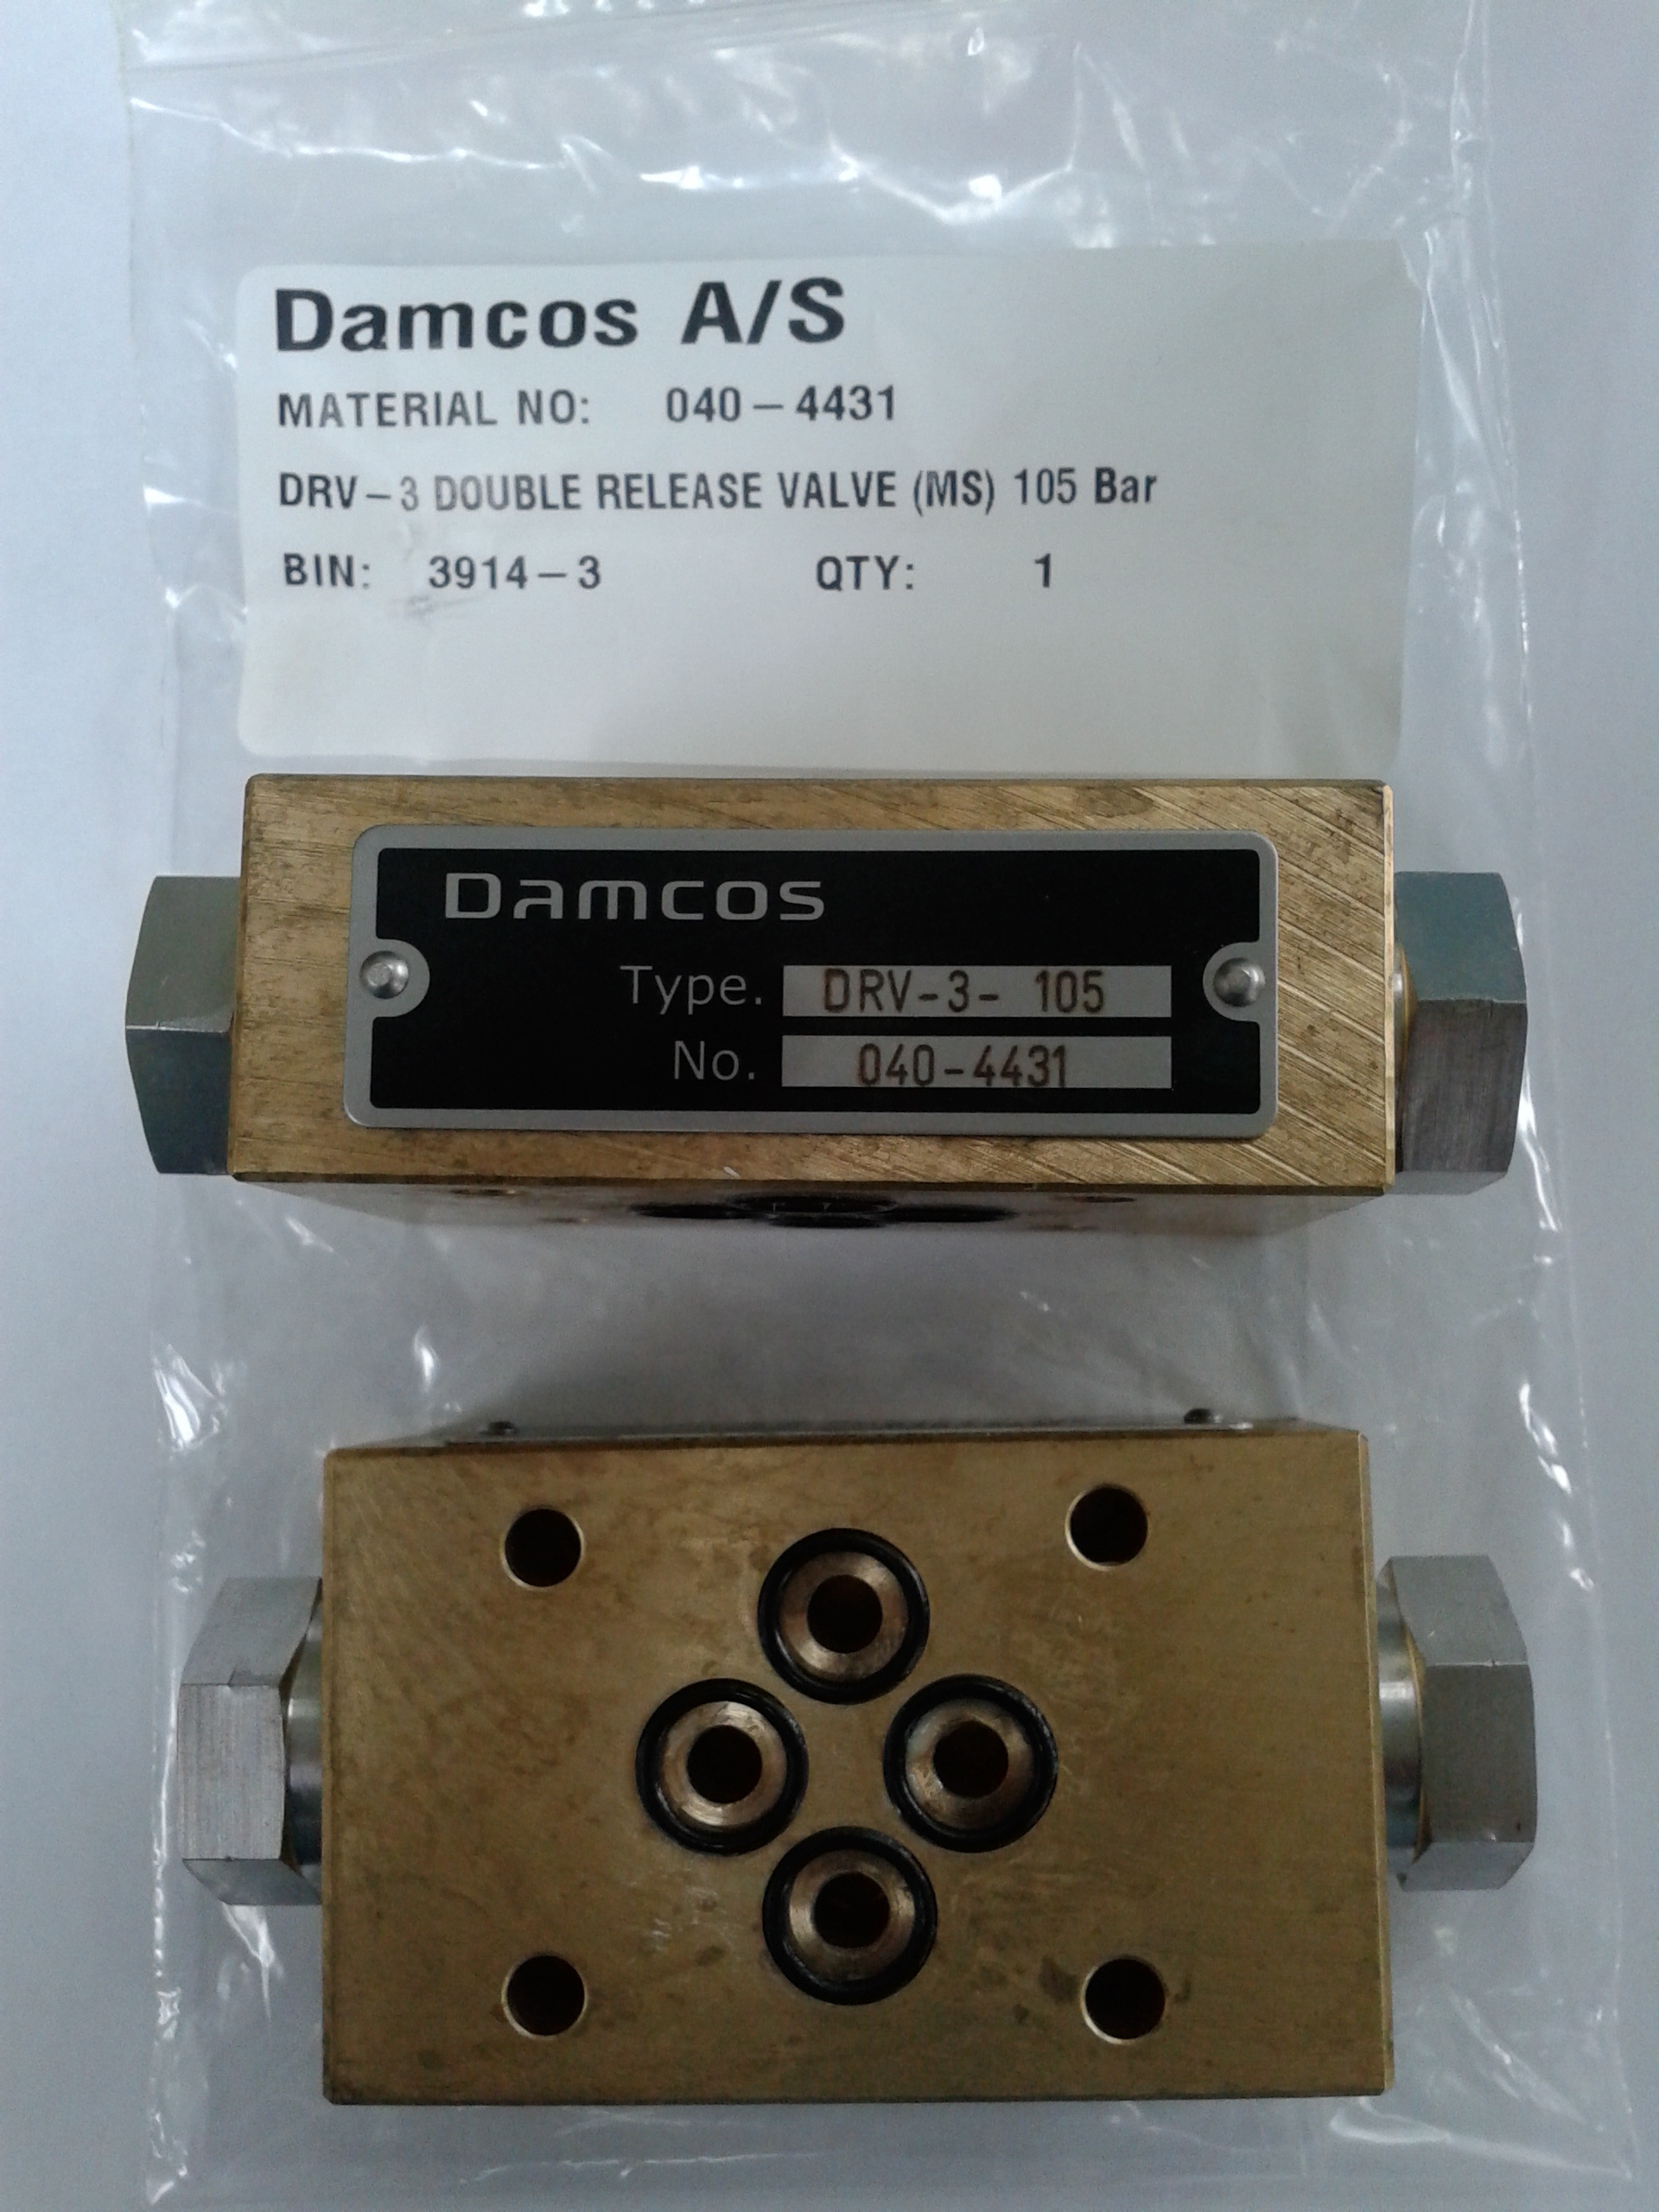 DRV-3 Double Release Valve (MS) 105 Bar (Part No- 040-4431)